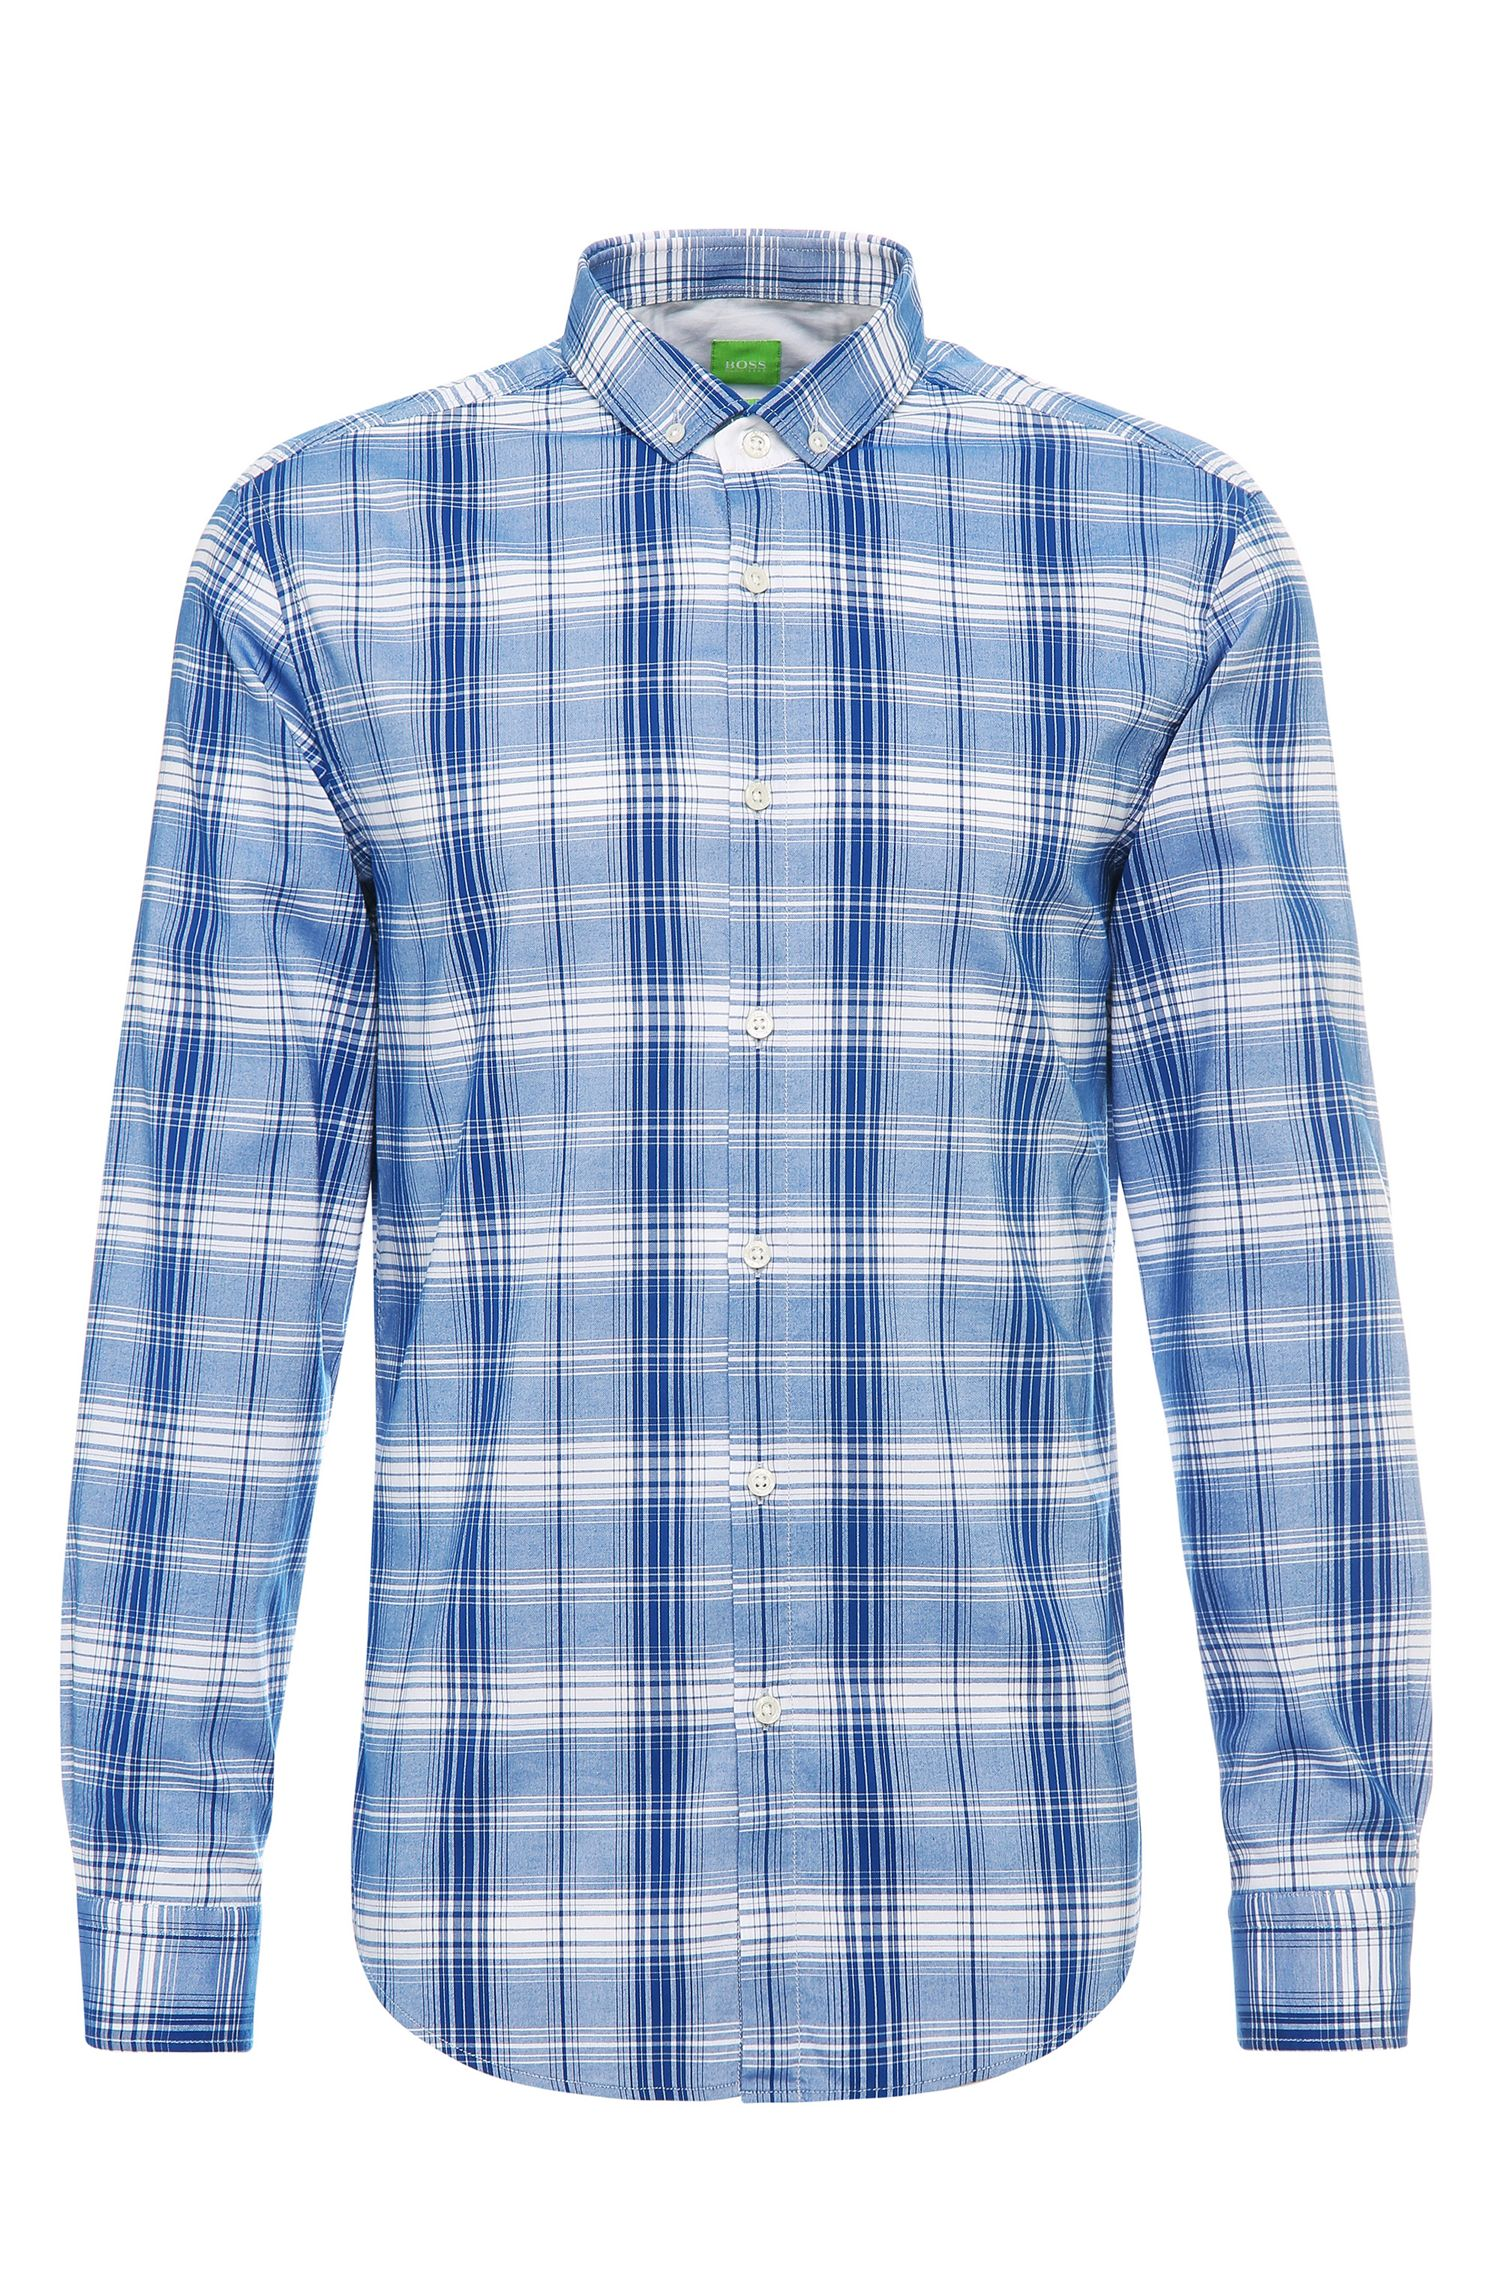 Plaid Cotton Button Down Shirt, Slim Fit | C-Bilia